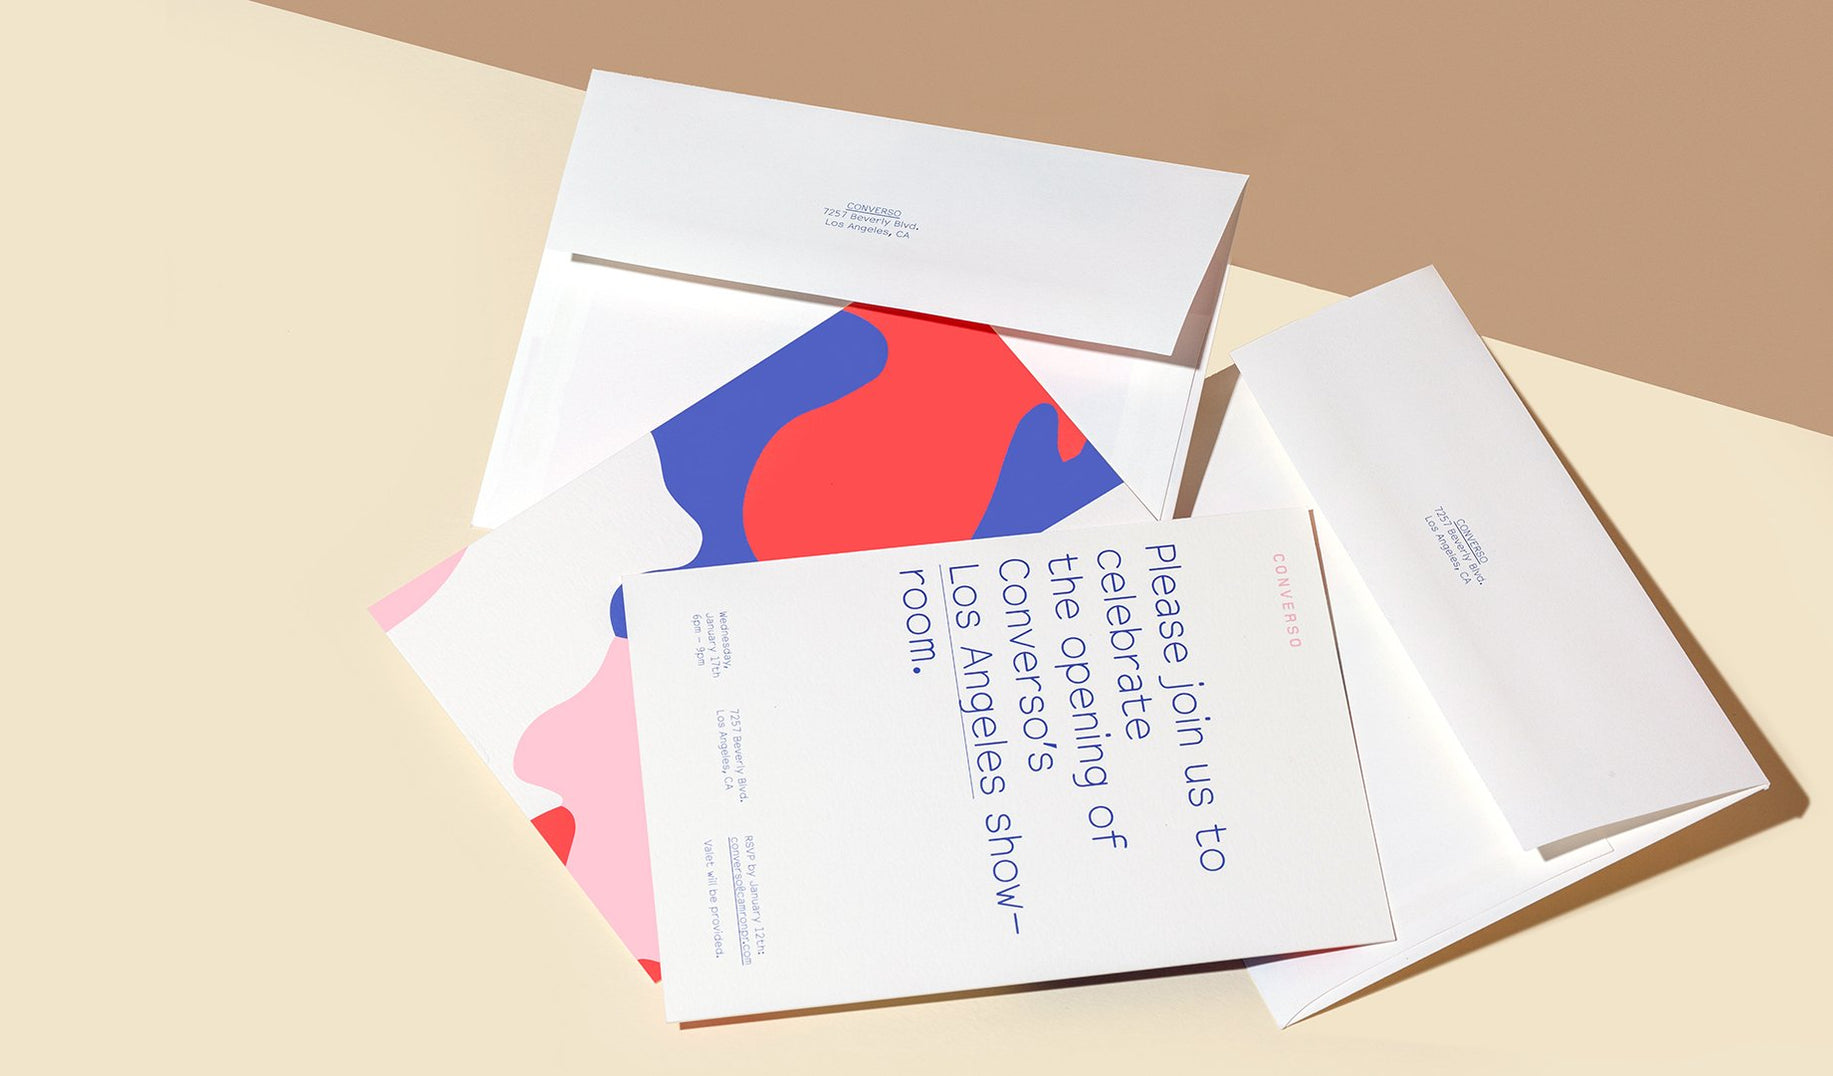 Need envelopes with that? We offer a variety of customizable options including colored papers and vellums, or opt for the always classic Eggshell finish.